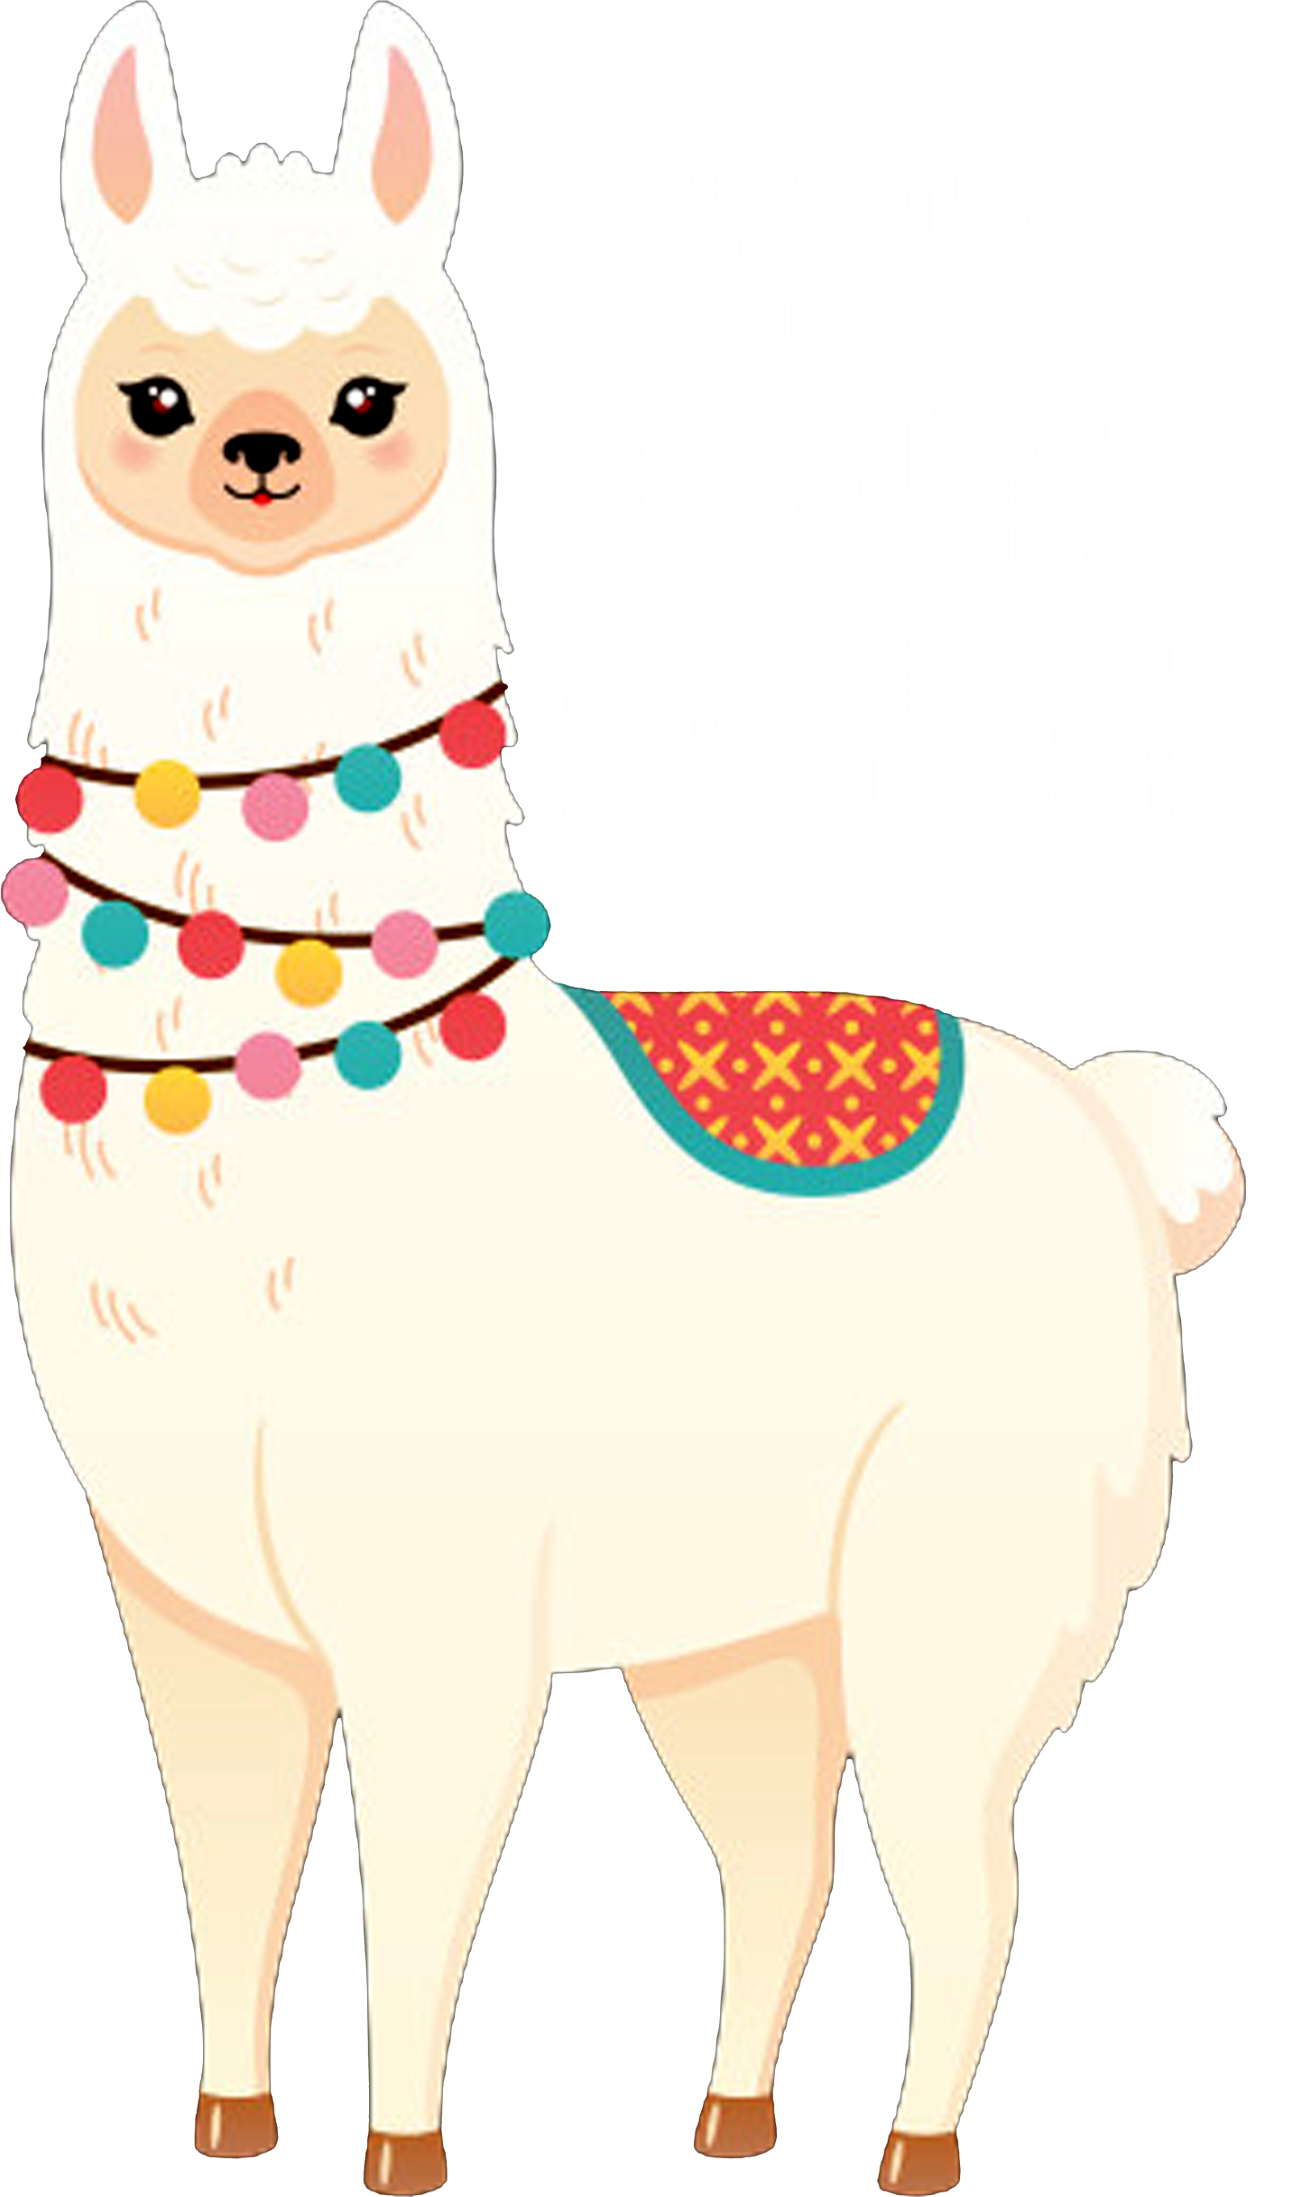 Trade Brothers For Llama